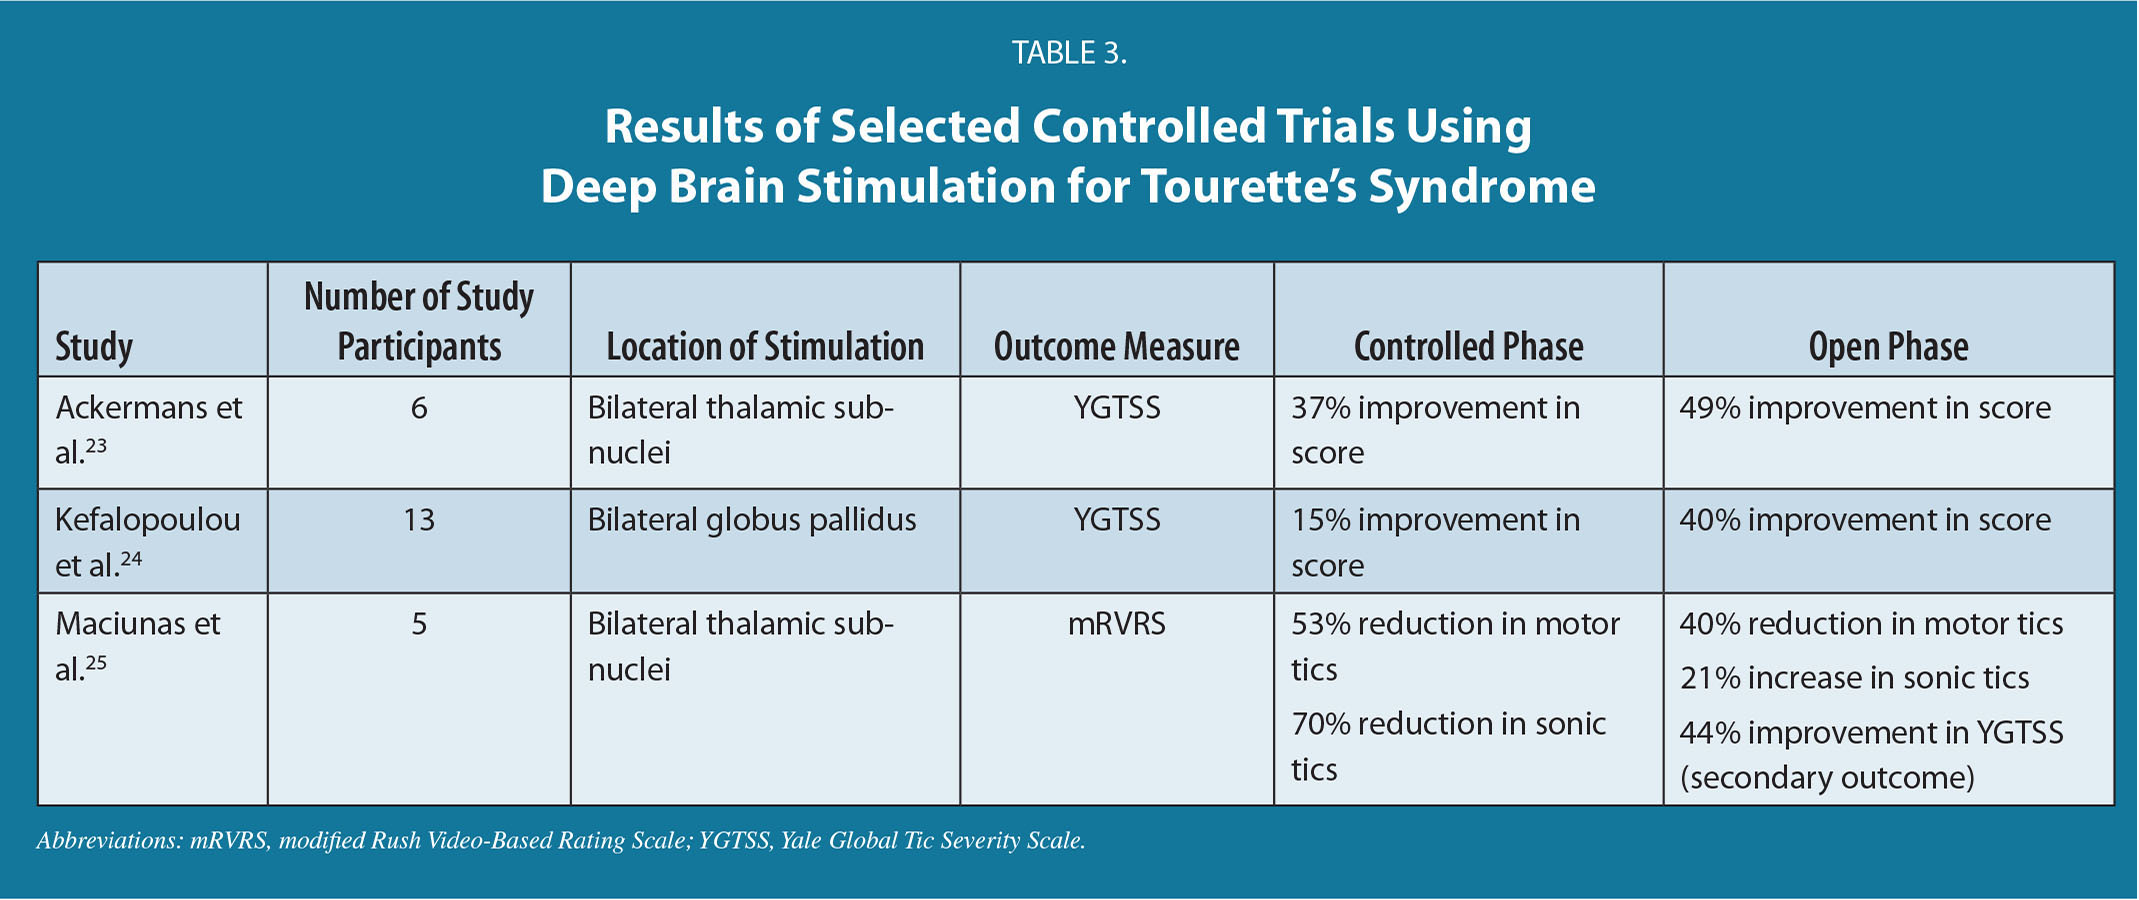 Results of Selected Controlled Trials Using Deep Brain Stimulation for Tourette's Syndrome